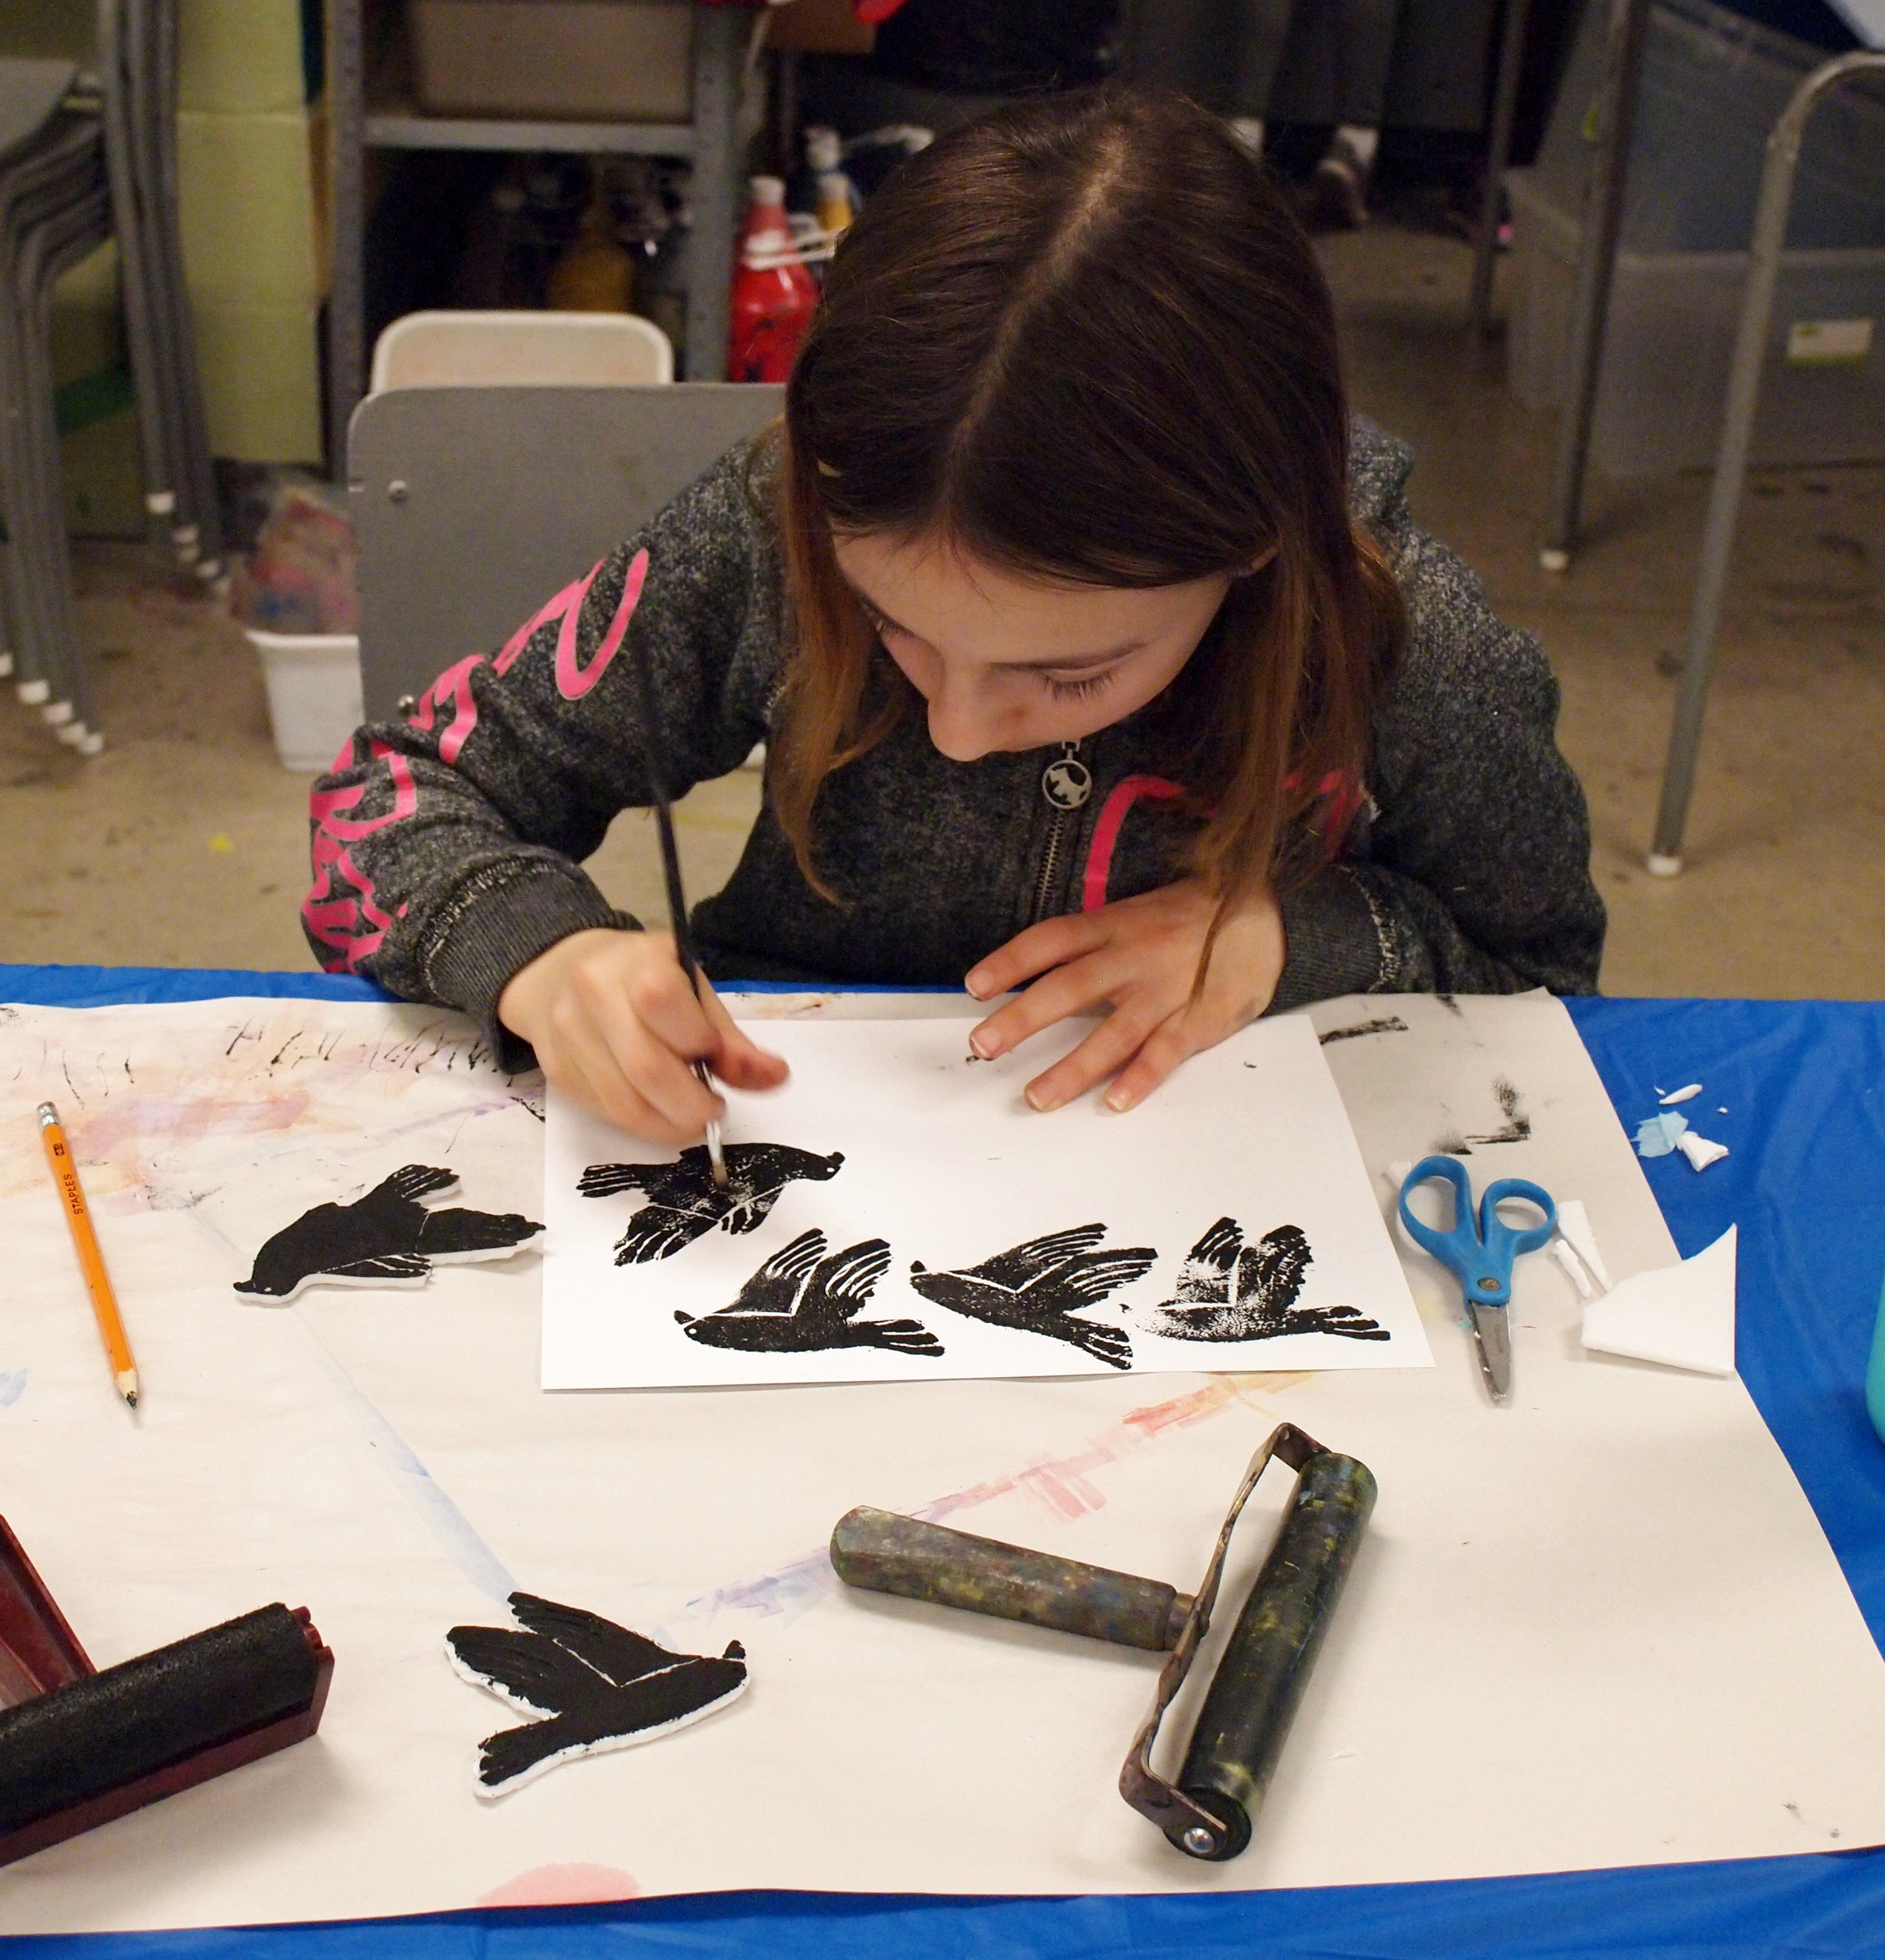 A young girl seated at a studio table touching up a series of black-stamped images of birds with a paintbrush